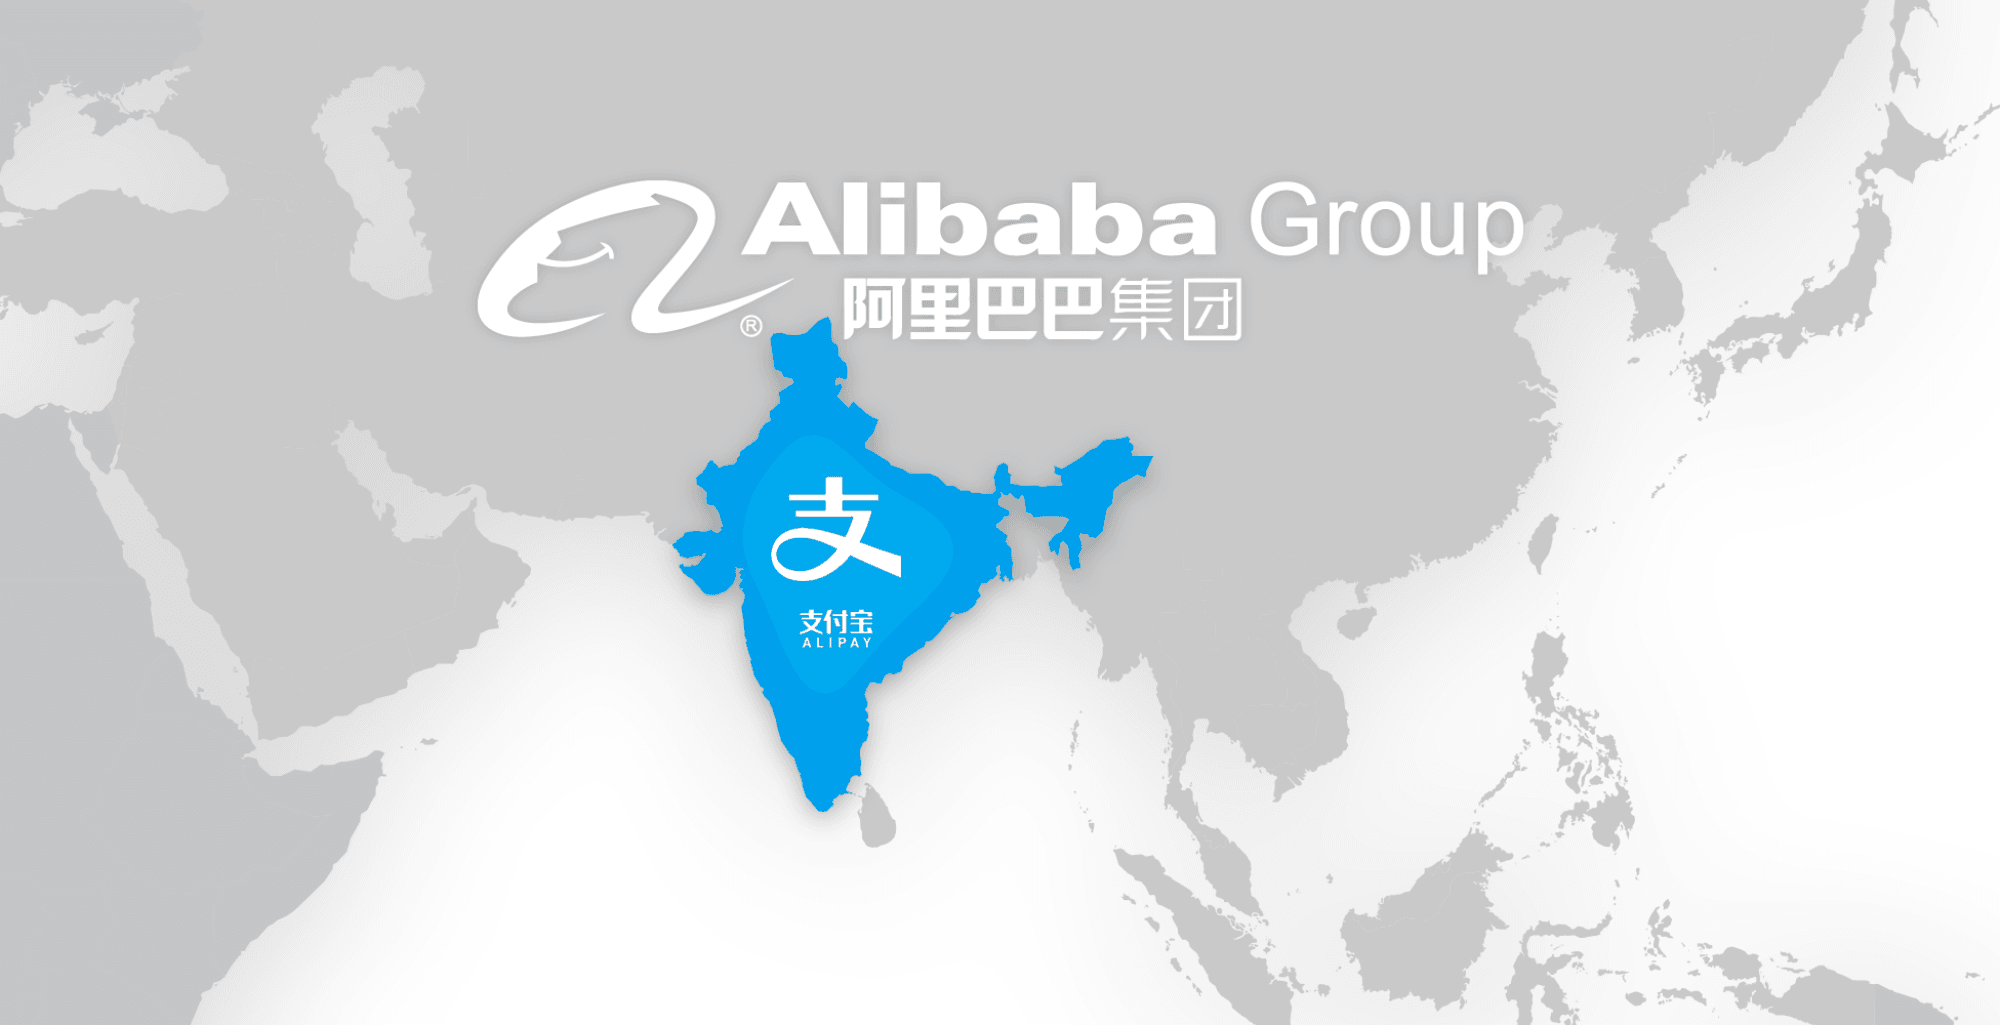 Alibaba Alipay Are Expanding To India Investing In Paytm China's alibaba group has put on hold plans to invest in indian companies, two sources aware of the plans said, amid souring business relations and ri. alibaba alipay are expanding to india